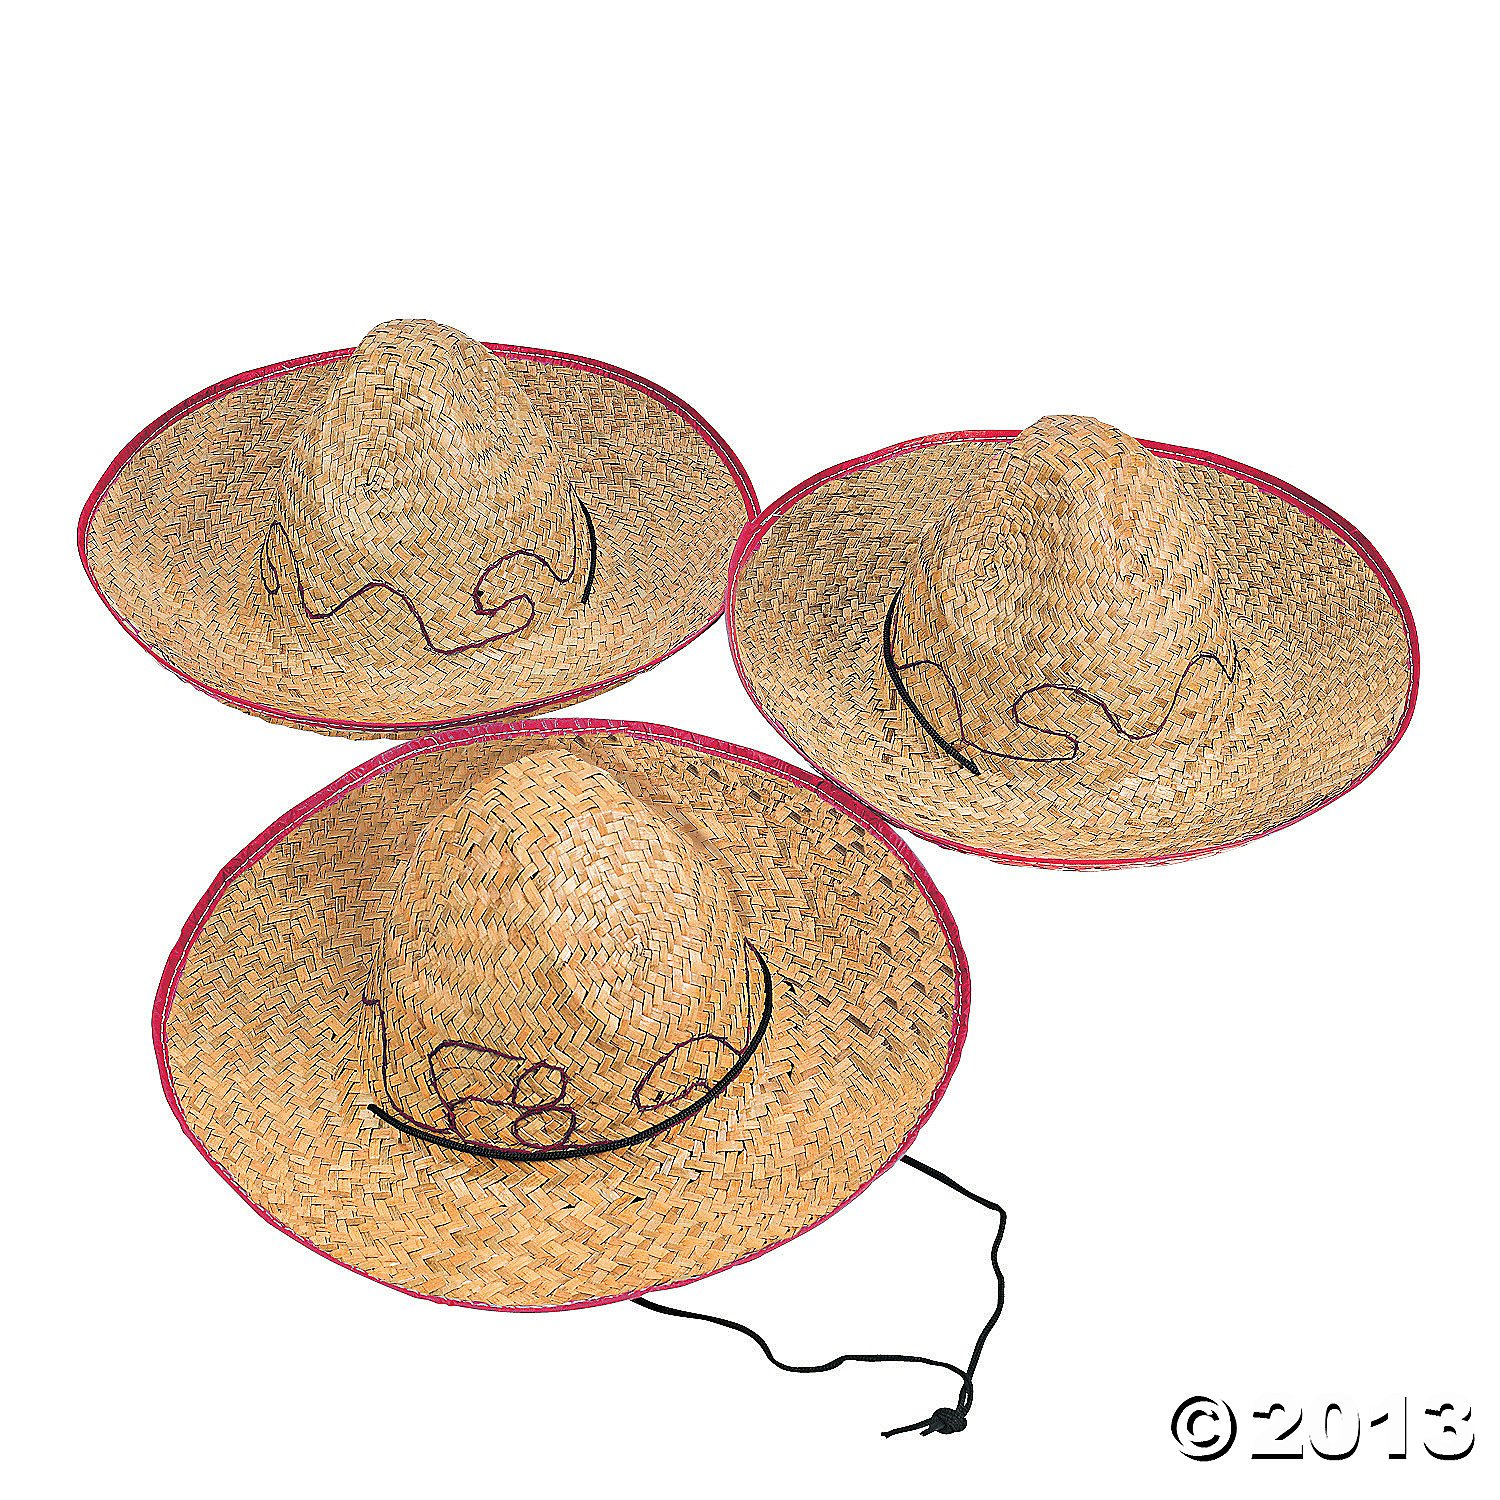 Oriental Trading Company IN-15-203 1 dz Child Embroidered Sombrero Hats